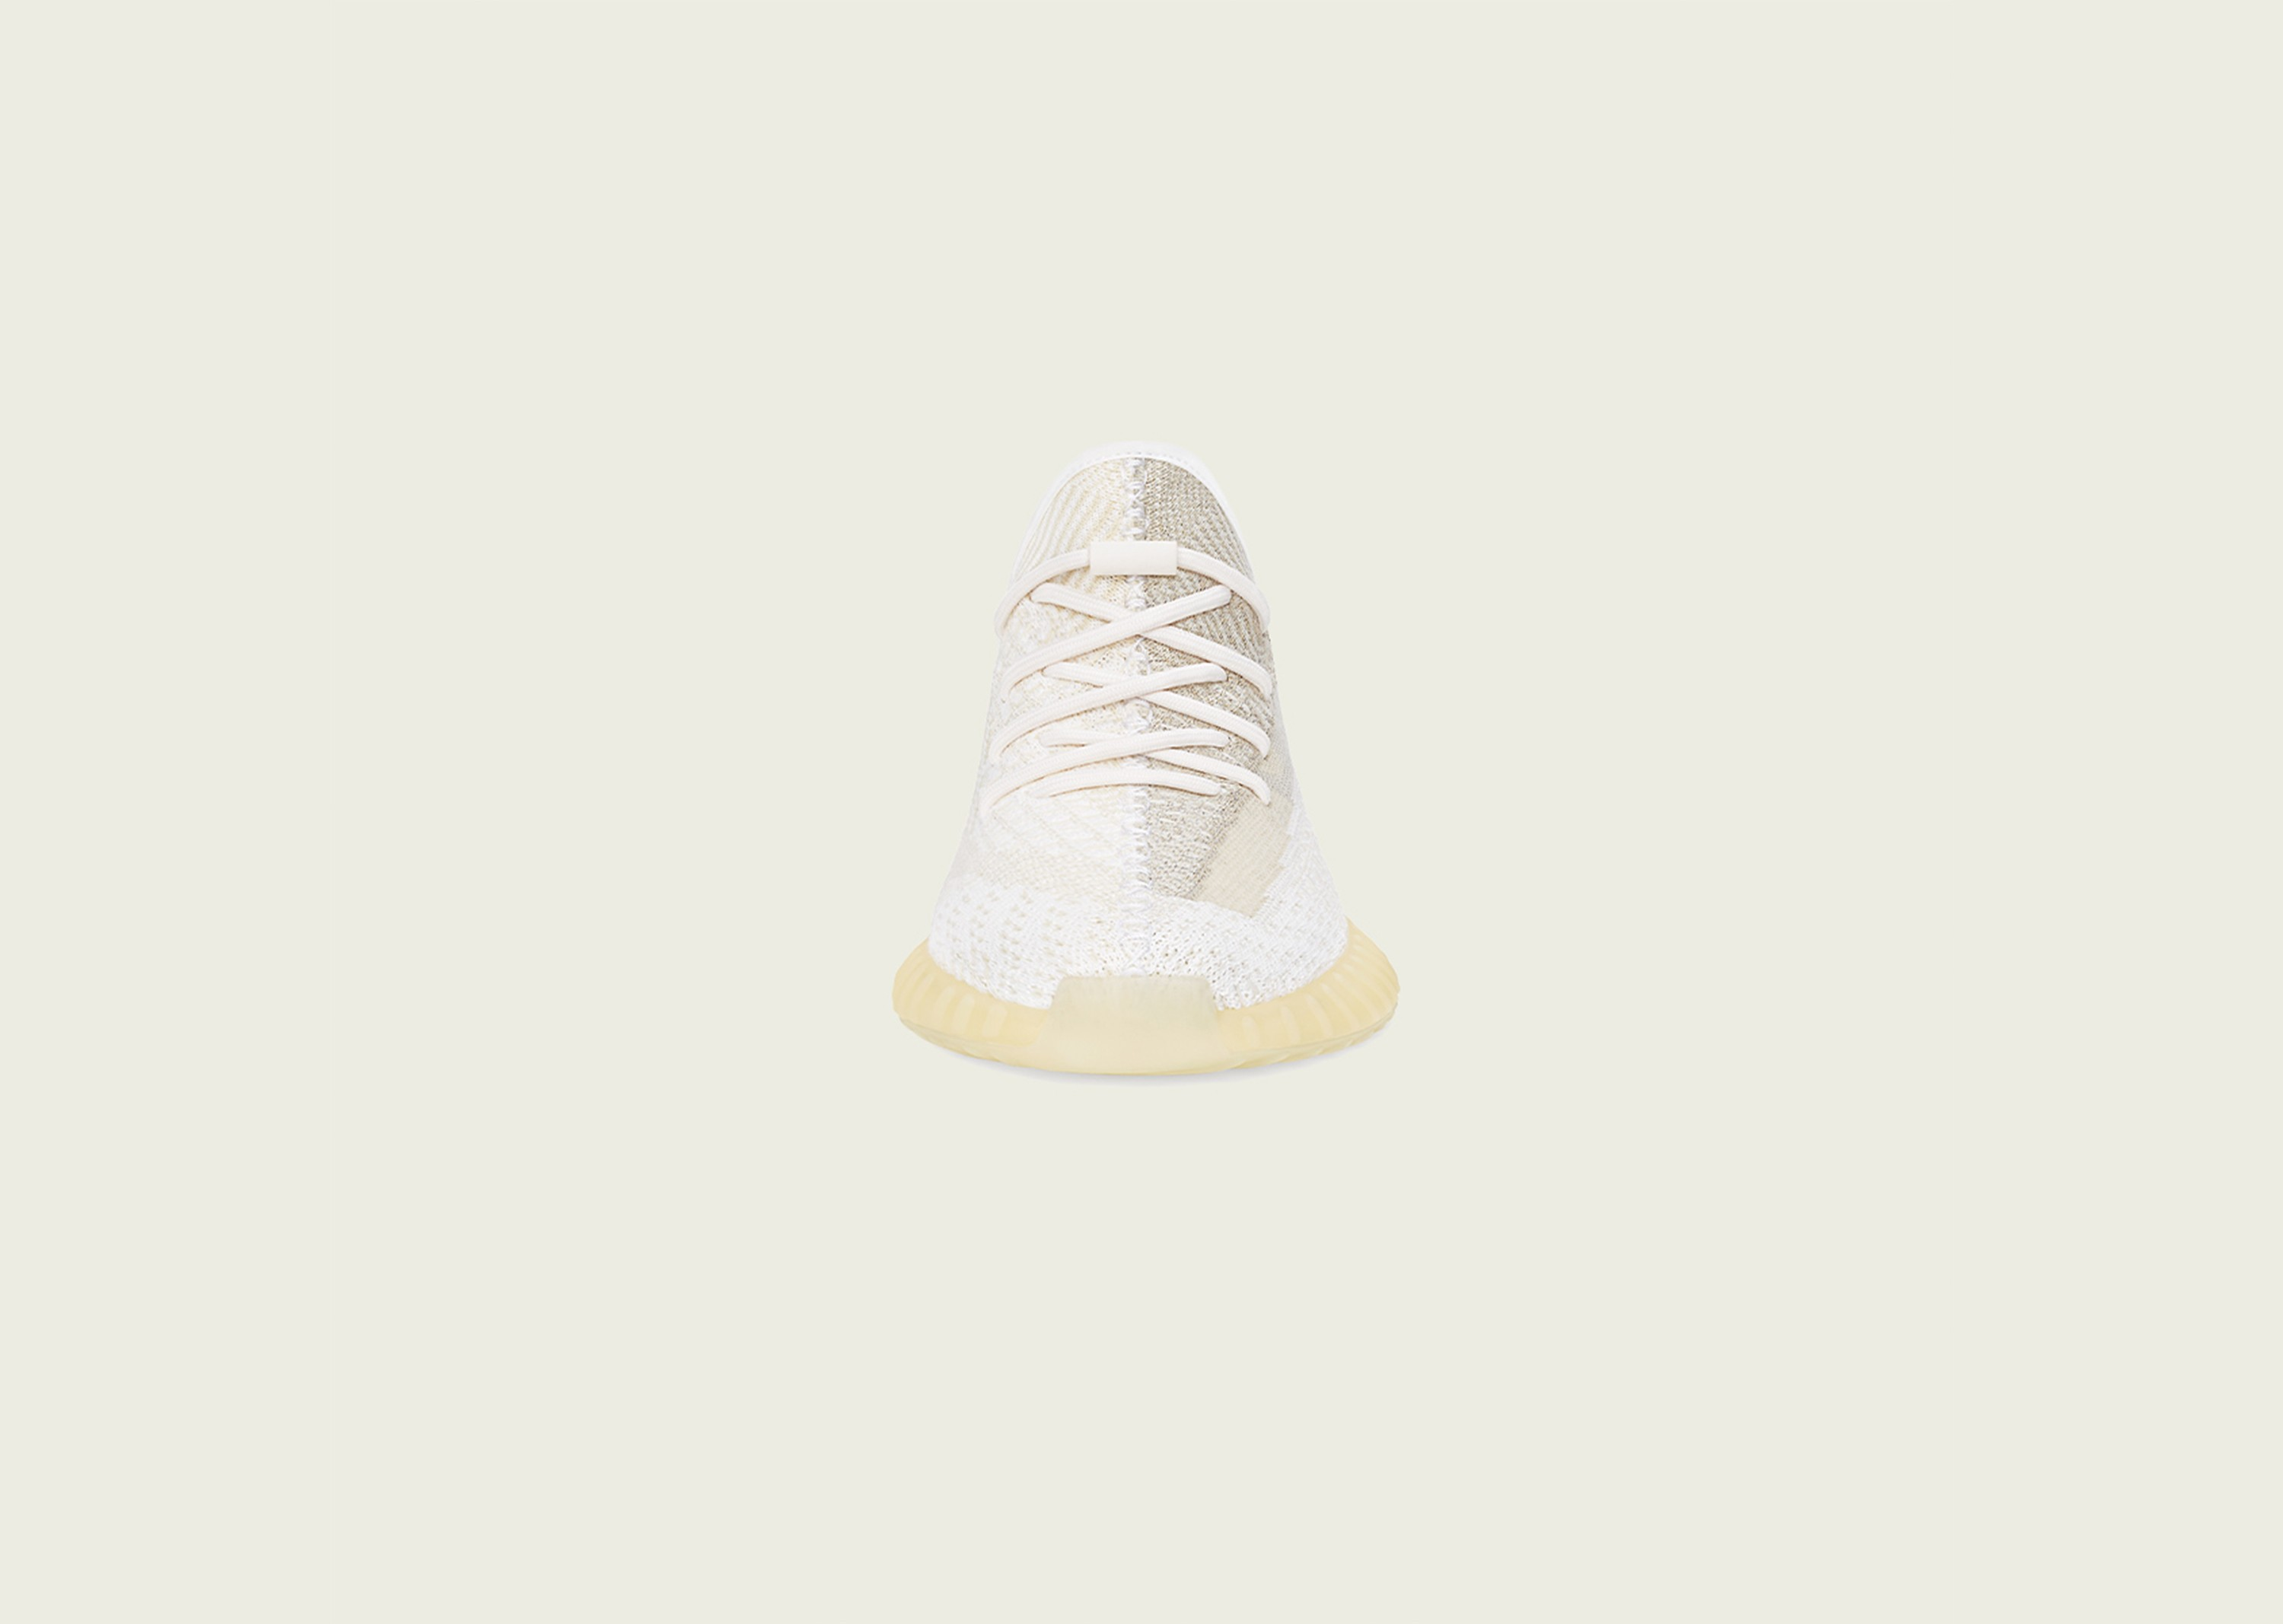 yeezy350natural__0000_YEEZY_BOOST_350_V2_NATURAL_Front_Social_IG_1200x1200